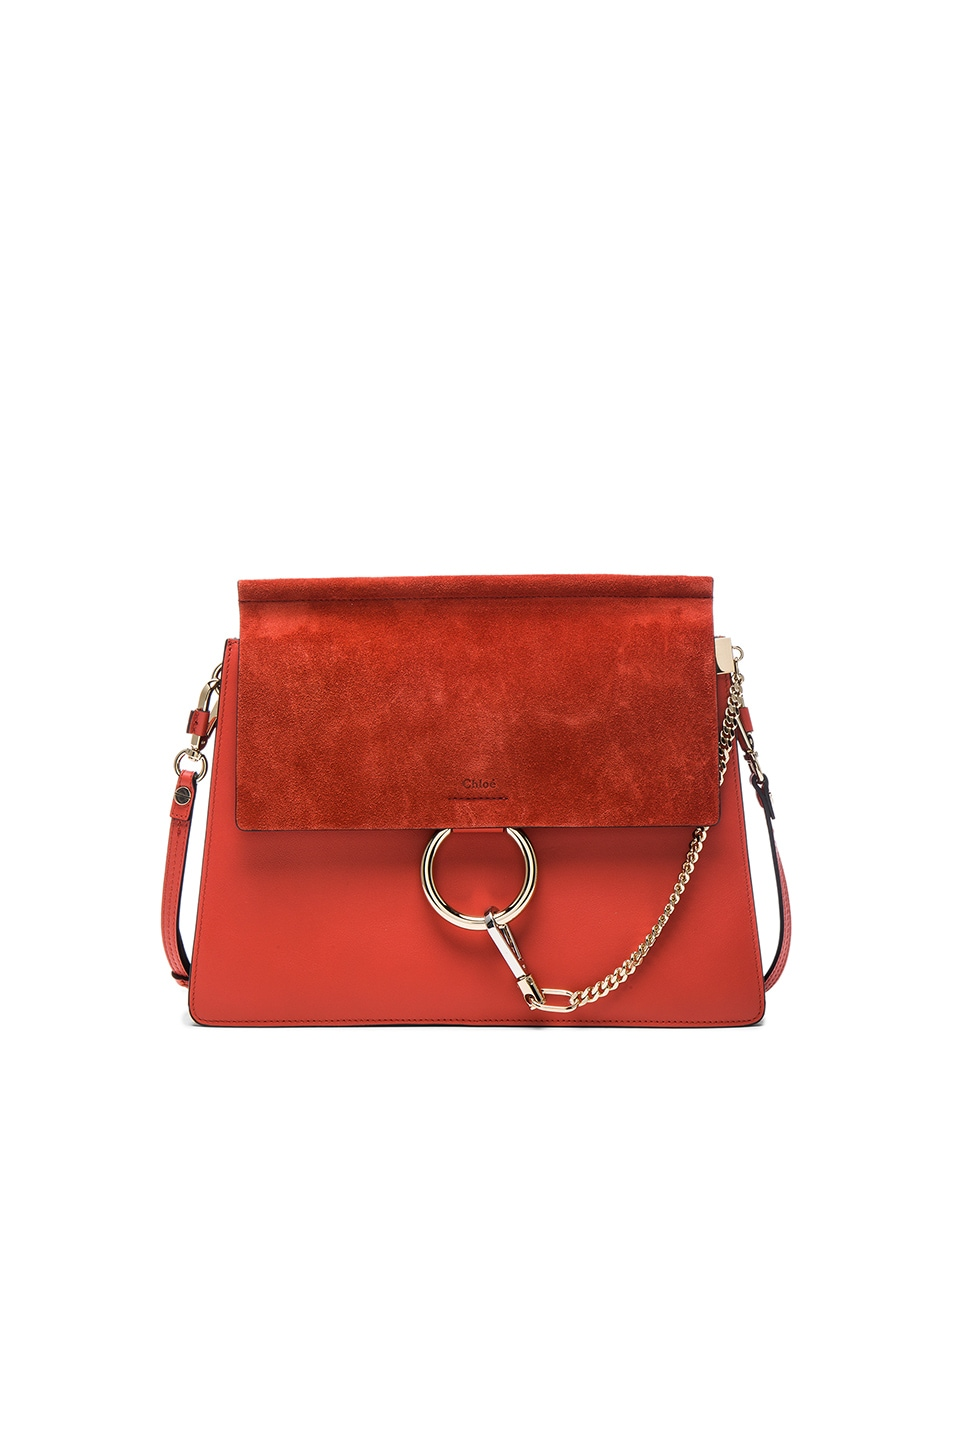 Image 1 of Chloe Medium Leather Faye Shoulder Bag in Sepia Red